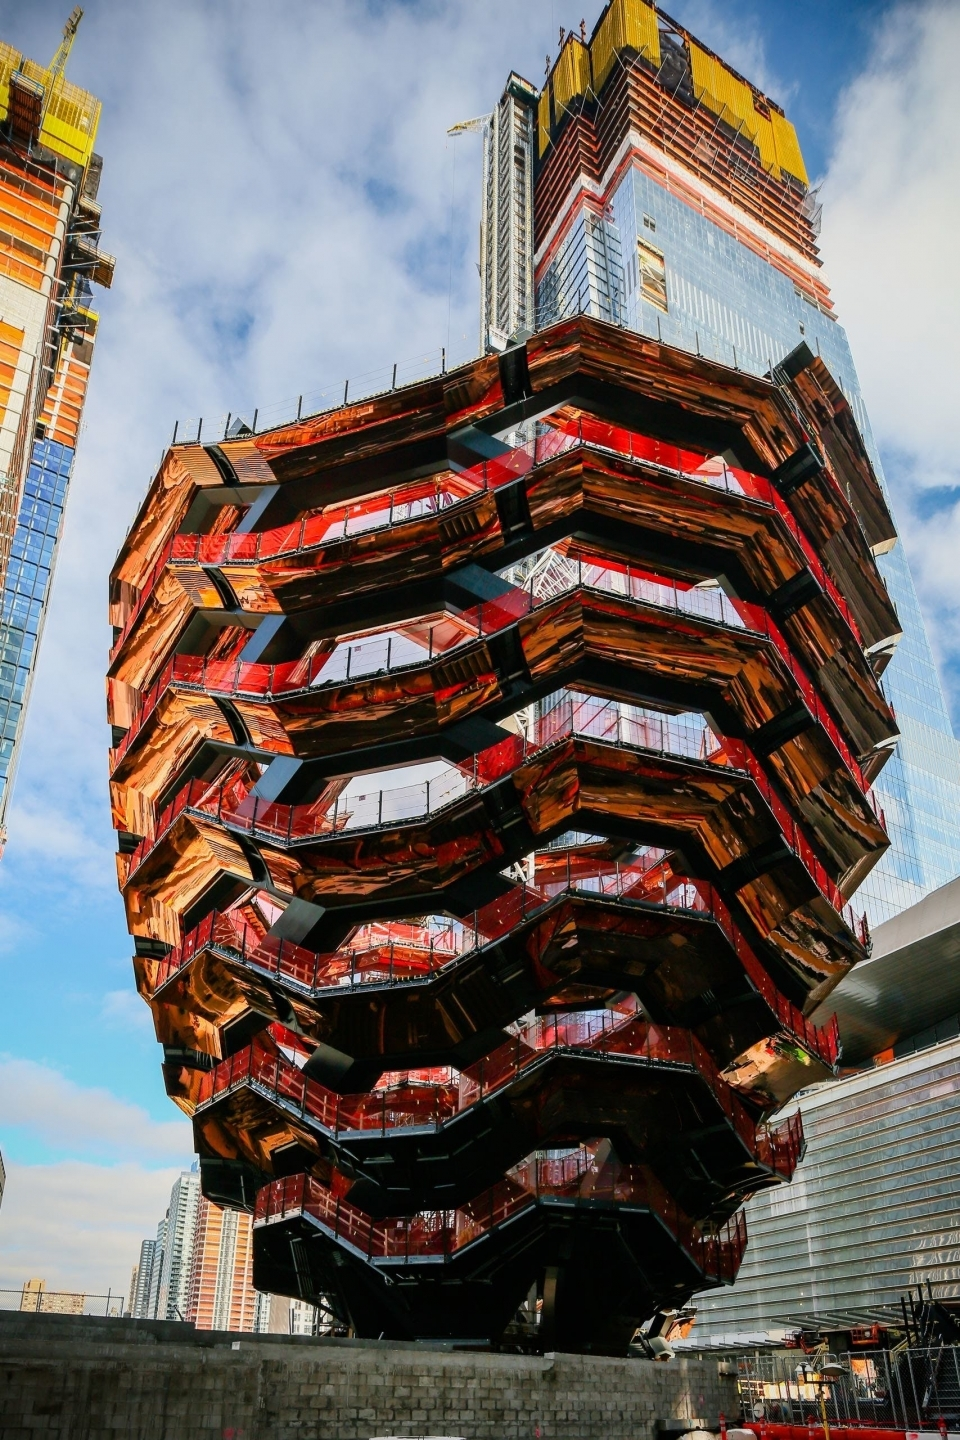 The Vessel, under construction at Hudson Yards